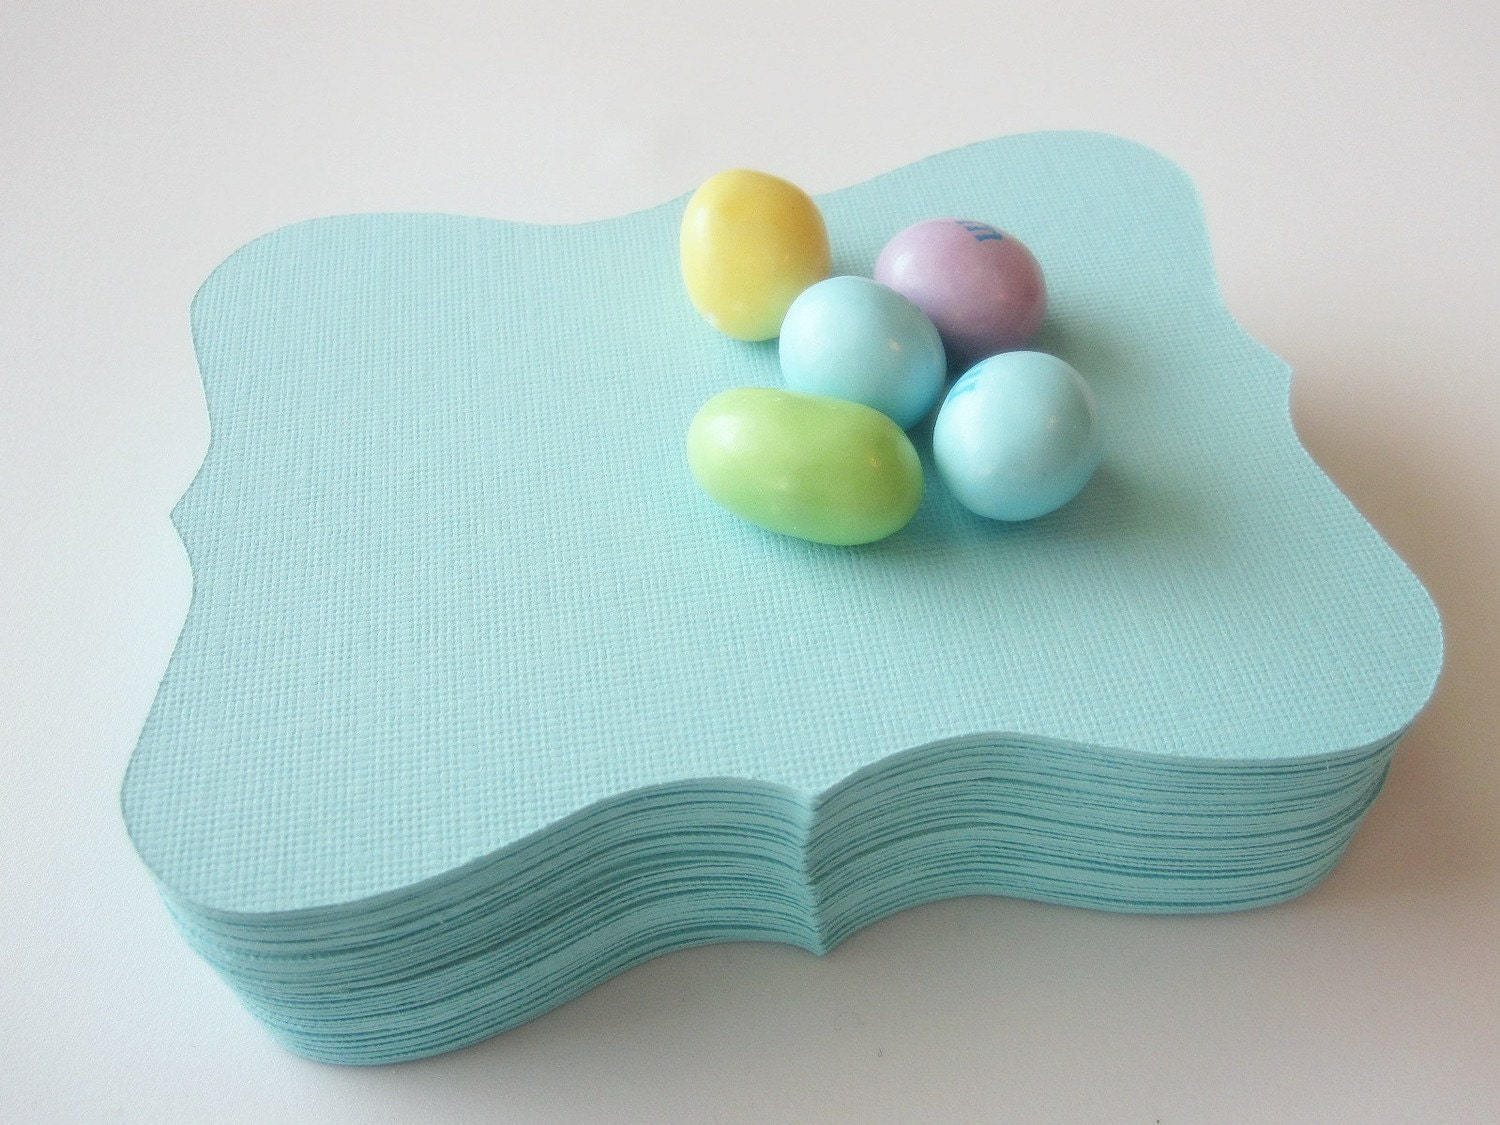 12 candy jar labels , Large Bracket cards (4.5 x 3.5 inches) in Teal Textured Cardstock